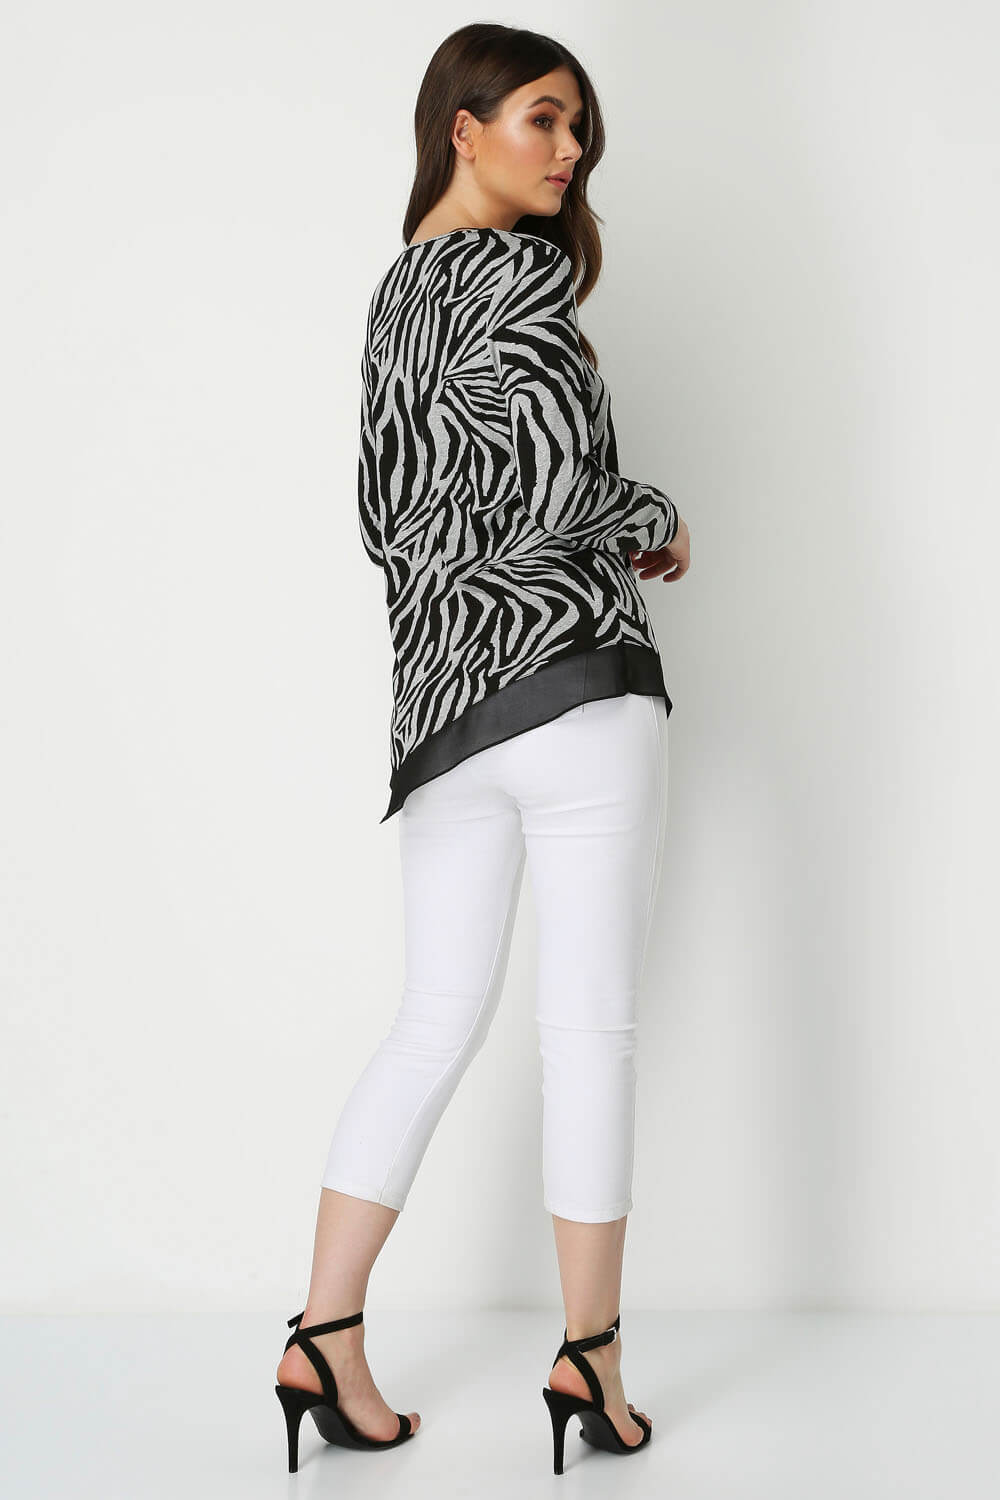 Roman-Originals-Zebra-Print-Chiffon-Hem-Top-Ladies-Blouse